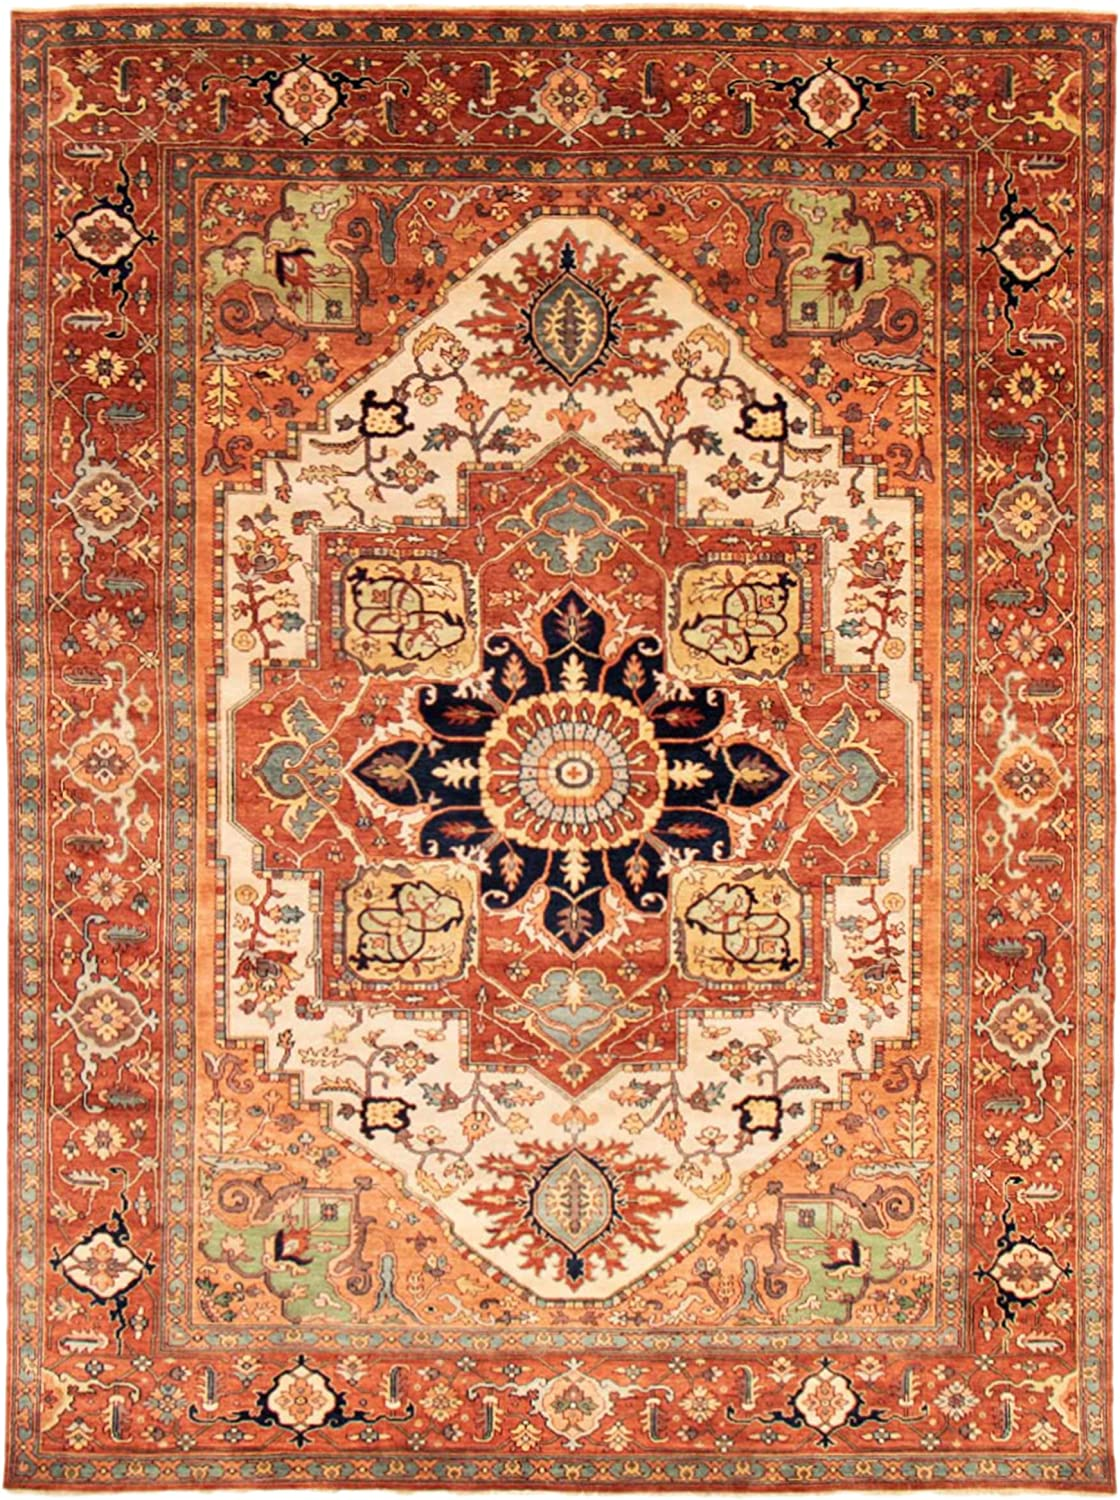 eCarpet Gallery Large Area Rug Max 60% Free shipping OFF Bedroom Room Hand-K for Living